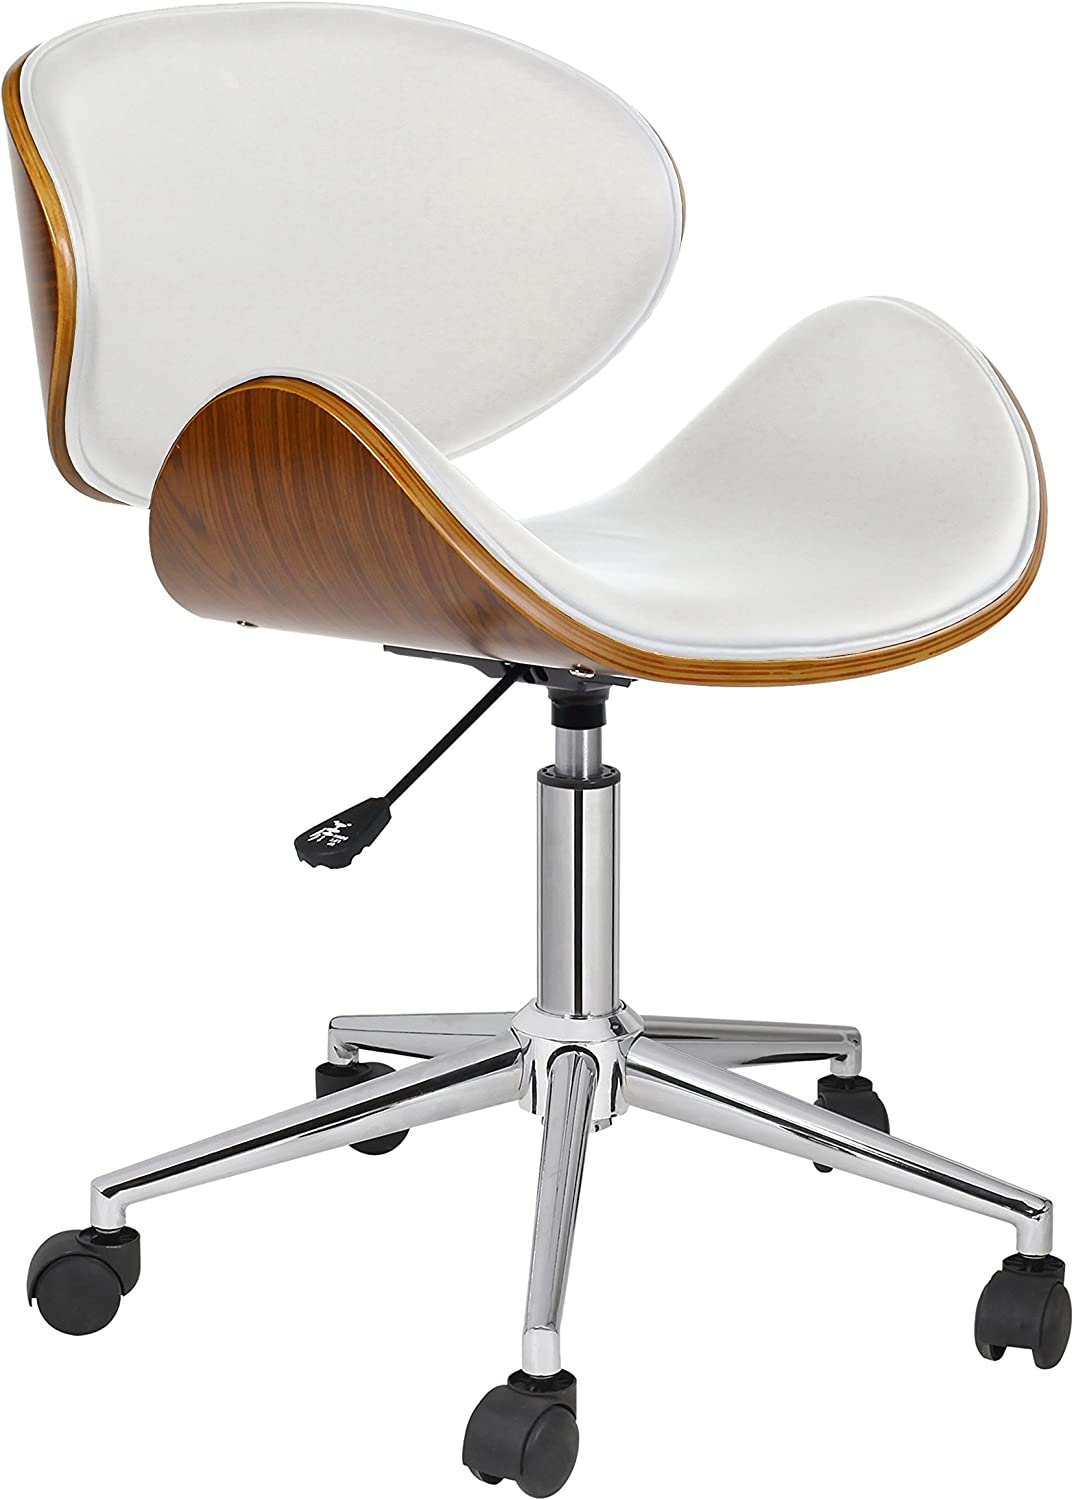 Amazon Com Porthos Home Rylan Office Chair A Classy Executive Office Chair With 5 Easy Glide Caster Wheels Height Adjustable 360 Degree Swivel Fabulous Home Office Chair Size 24 X 23 X 35 Inches